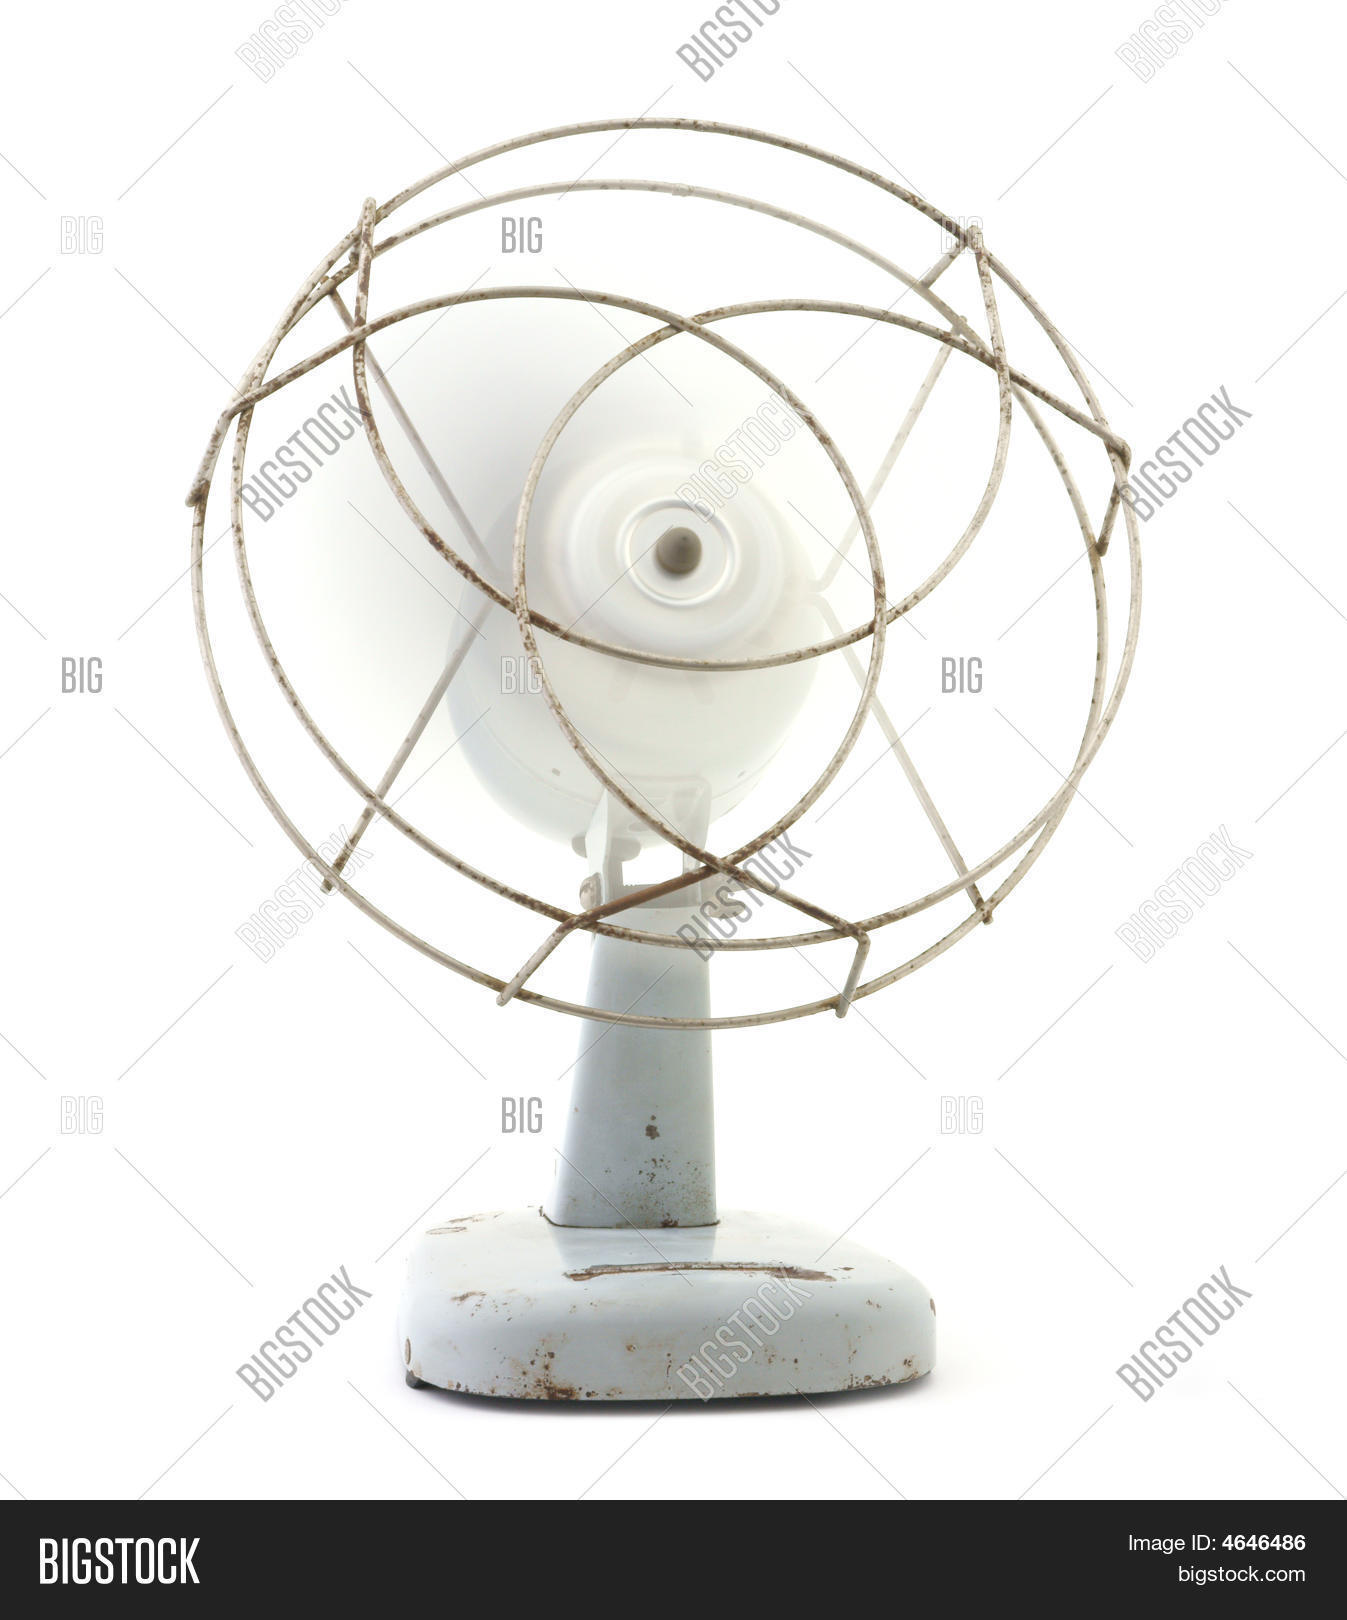 Antique Table Fan Image Photo Free Trial Bigstock Diagram All Picture